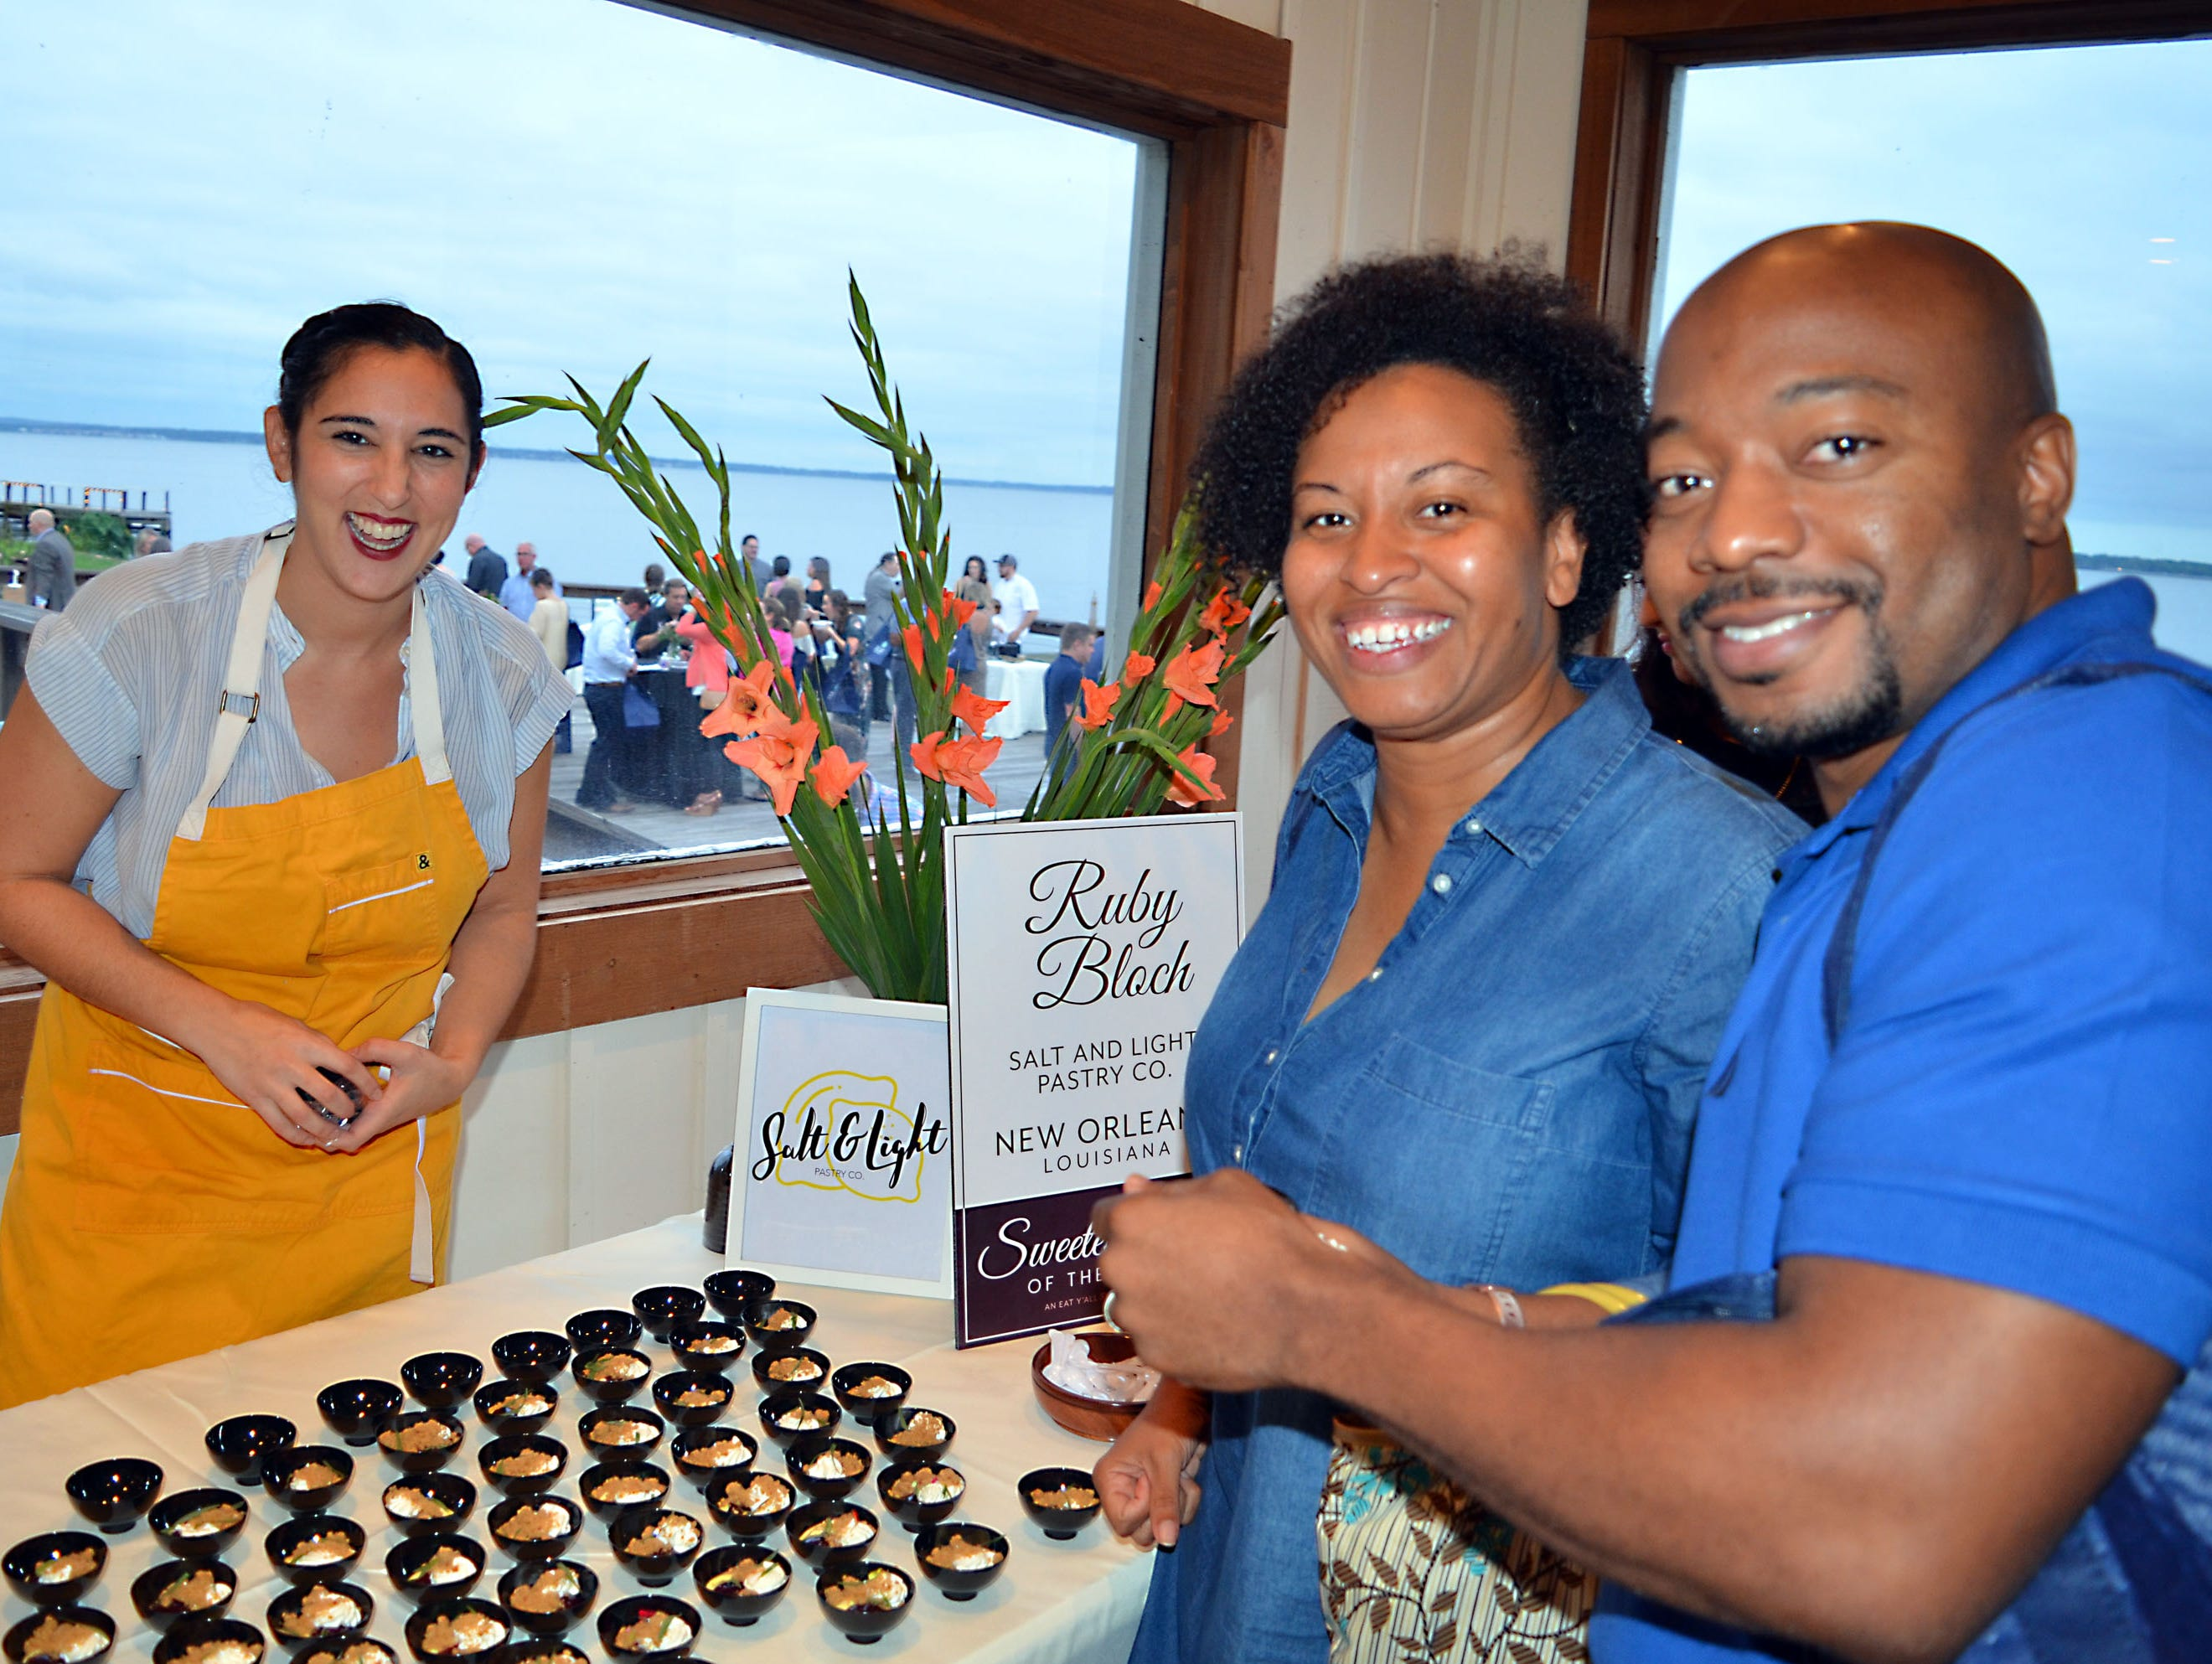 Nathaniel Taylor, from left, of Yazoo City, and Kemba Taylor, of Jackson, enjoy desserts prepared by pastry chef Ruby Bloch with Salt and Light Pastry Co. of New Orleans.